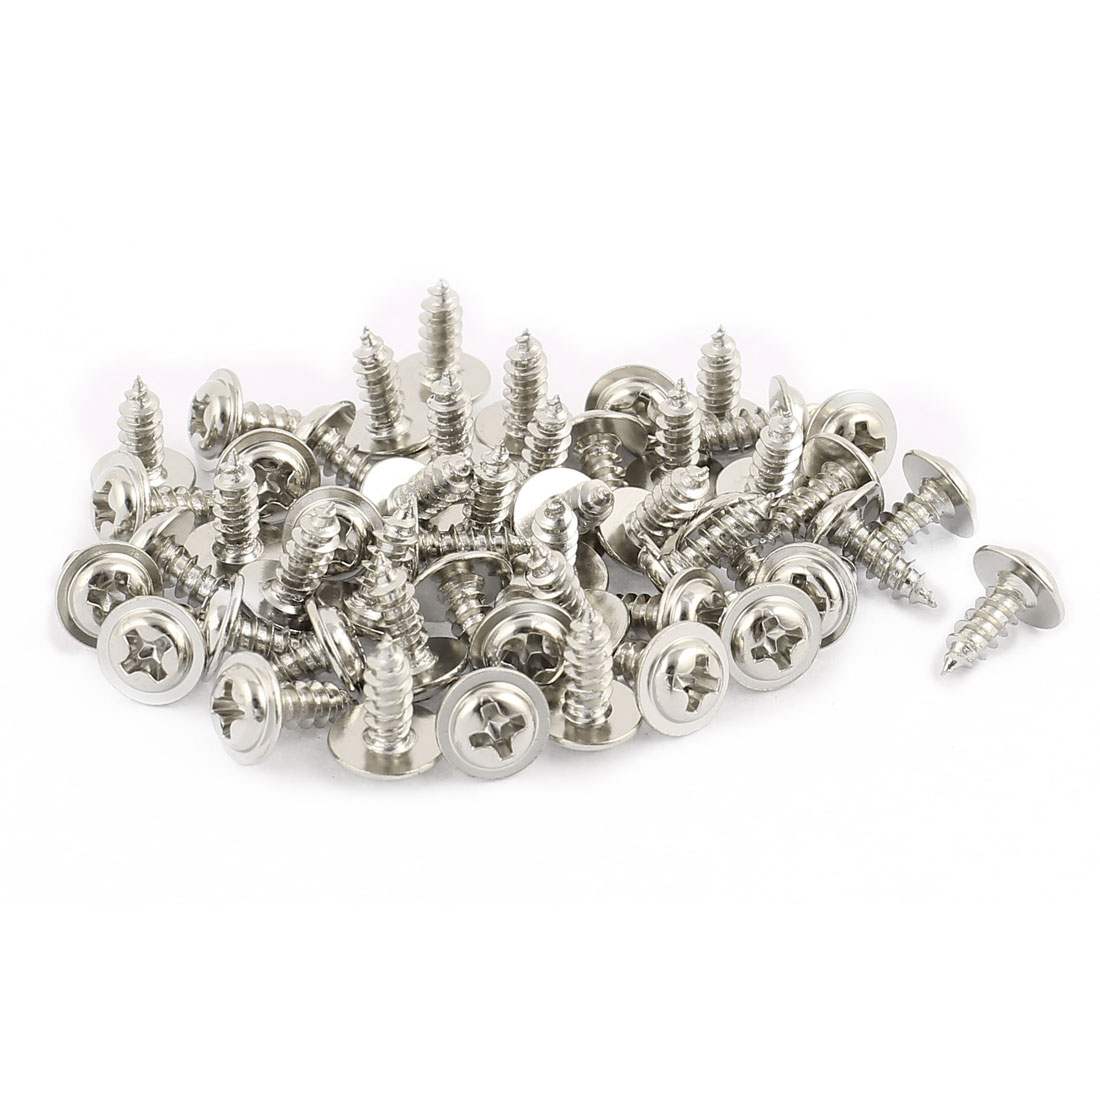 50pcs 3x8 Stainless Steel Phillips Head Self-Tapping Screw with Shoulder Washer